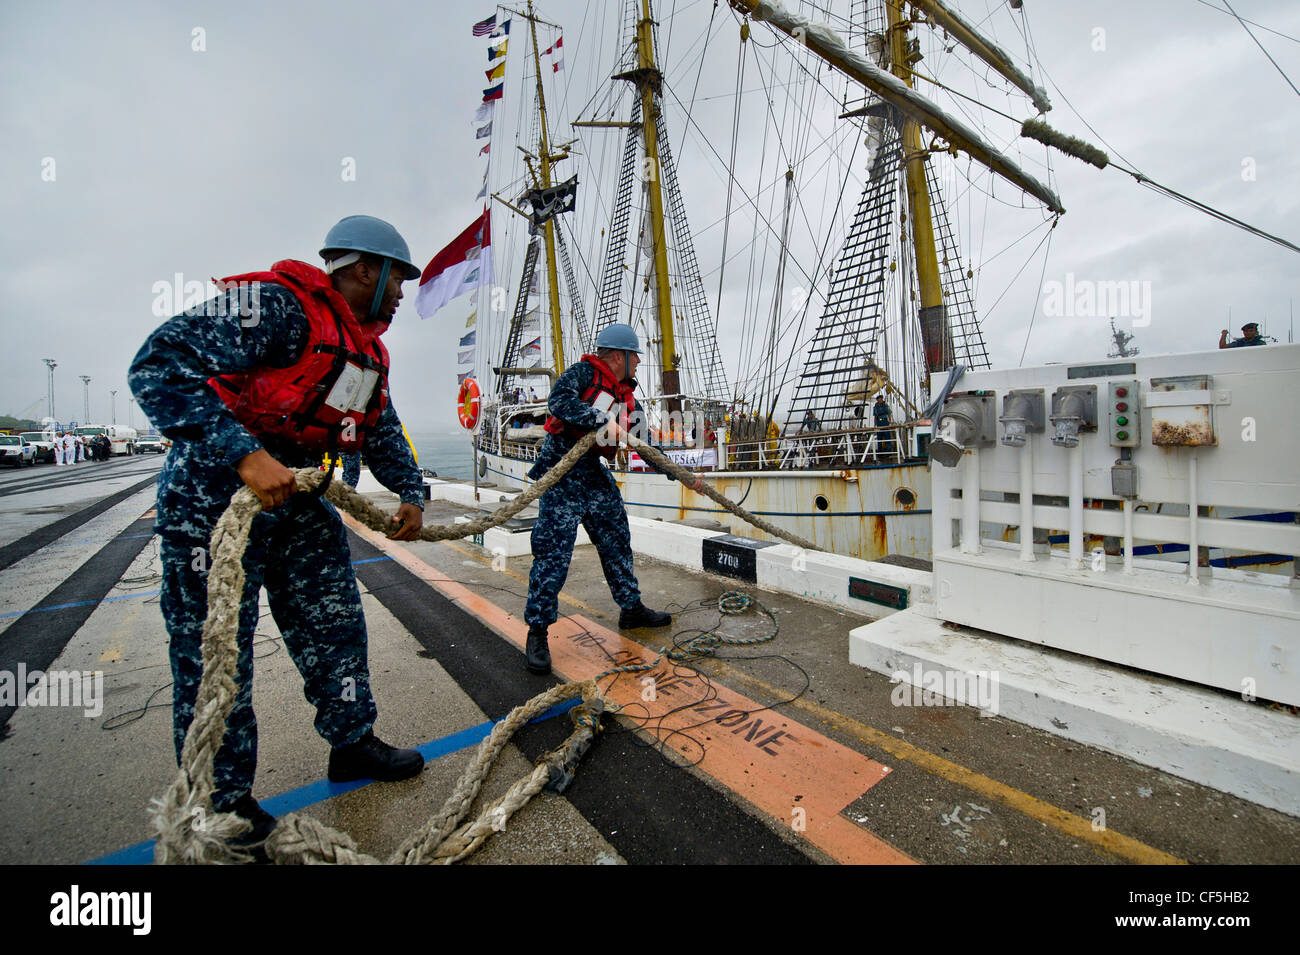 U.S. Navy Boatswain Mates help tie off the lines of the Indonesian Navy tall ship, KRI Dewaruci as it arrived at - Stock Image